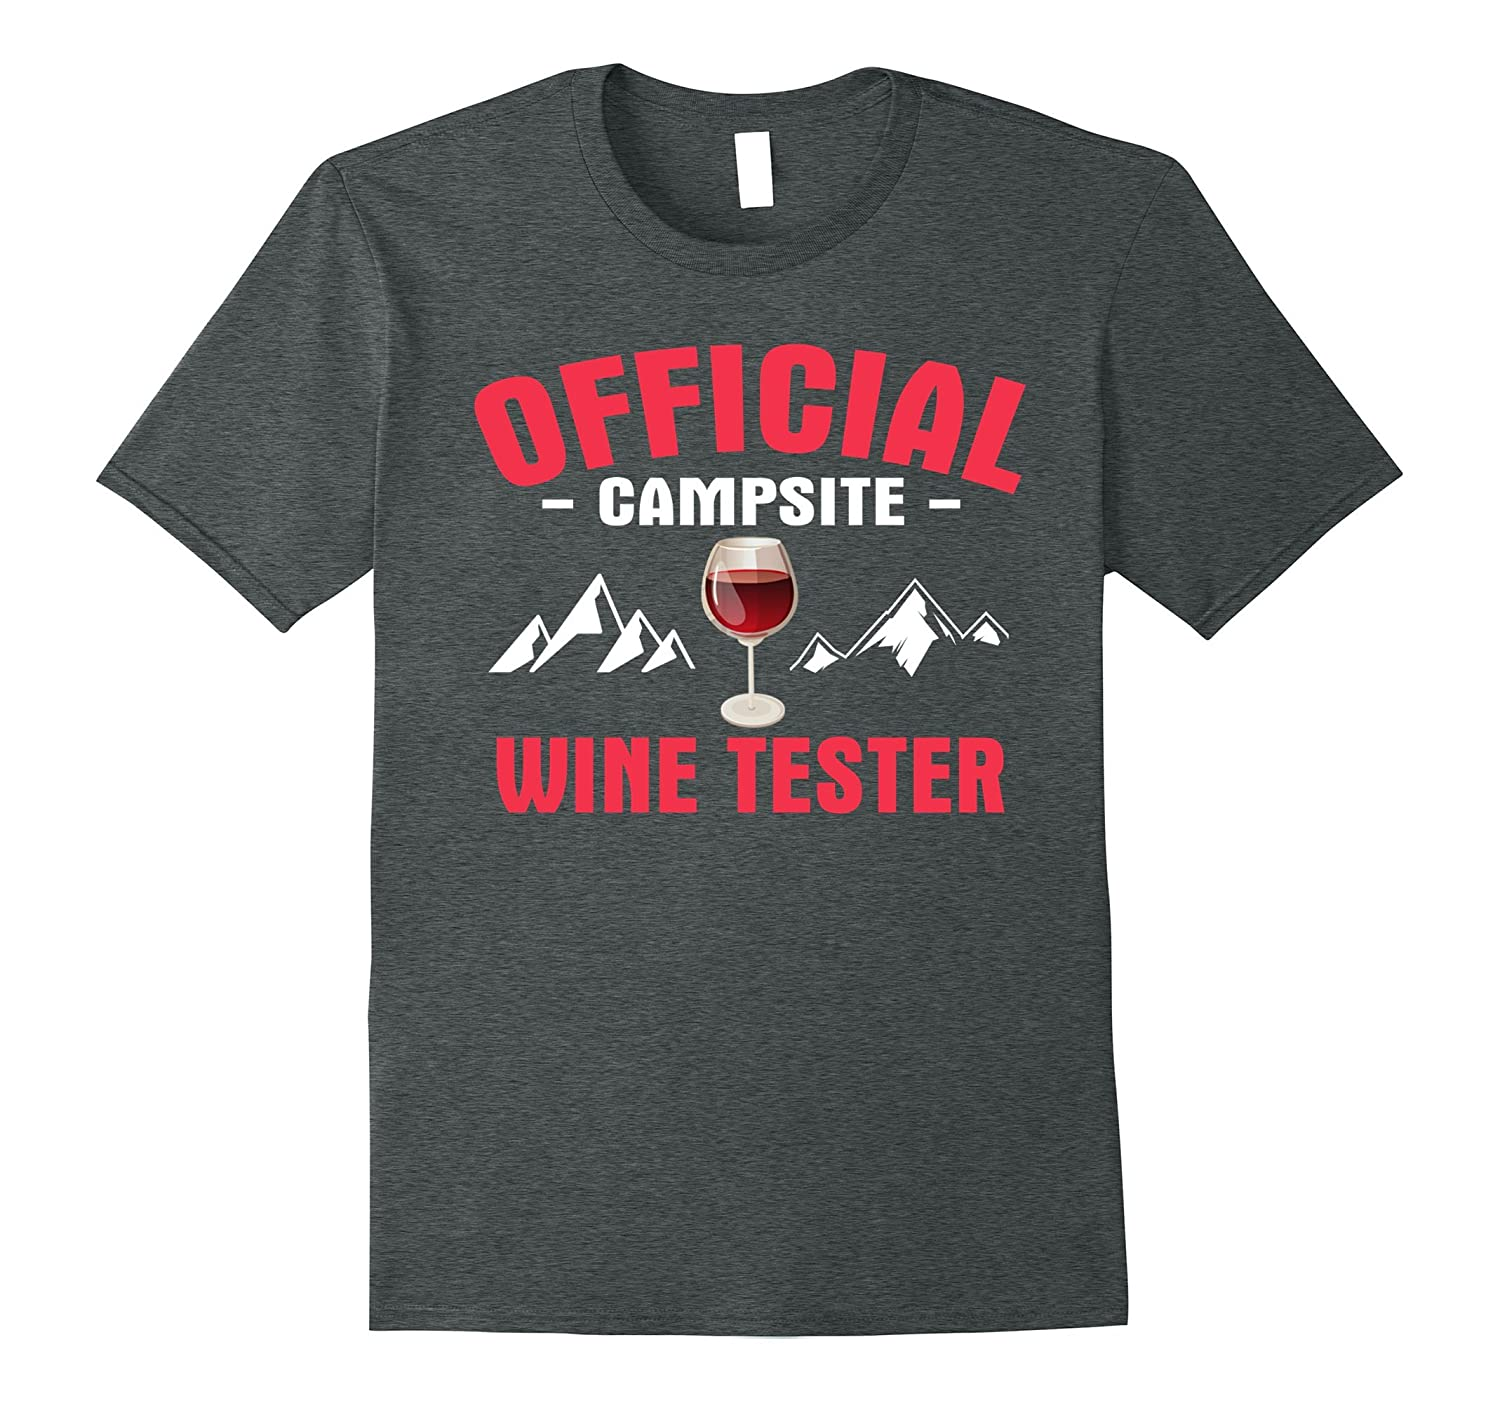 Offical Campsite Wine Tester Tee Shirt